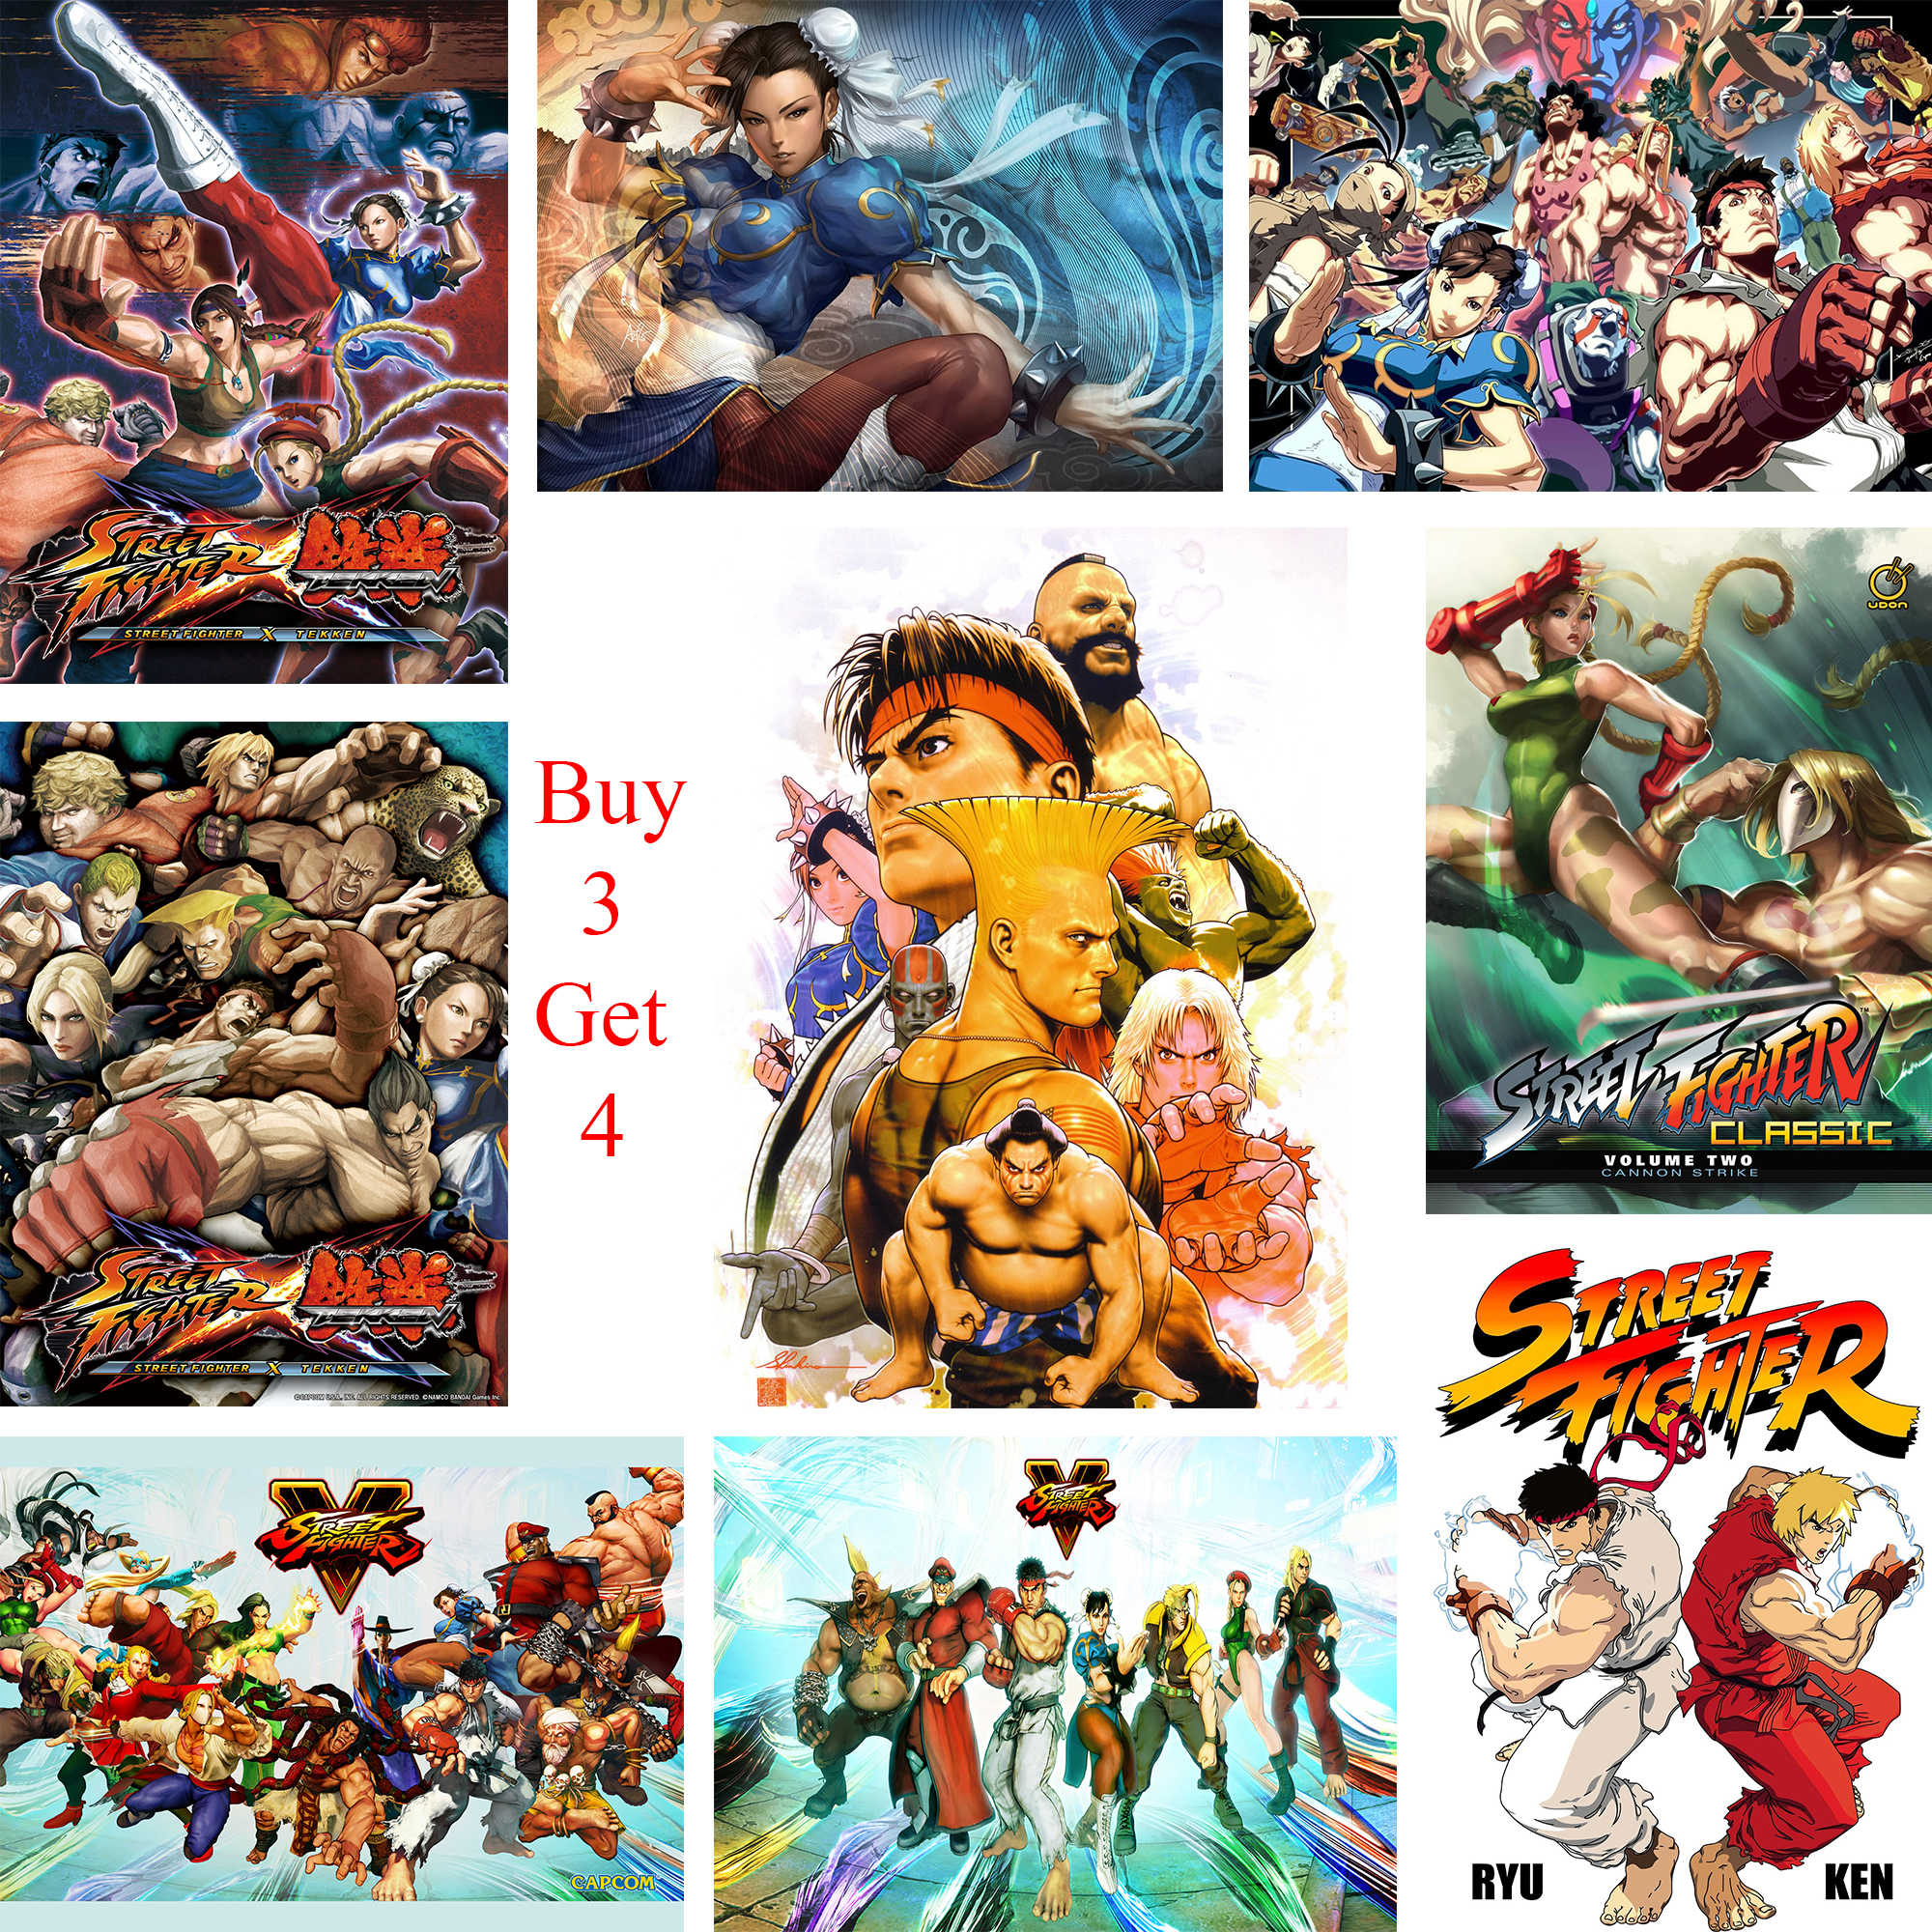 Street fighter posters game wall stickers white coated paper prints home decoration livingroom bedroom bar home